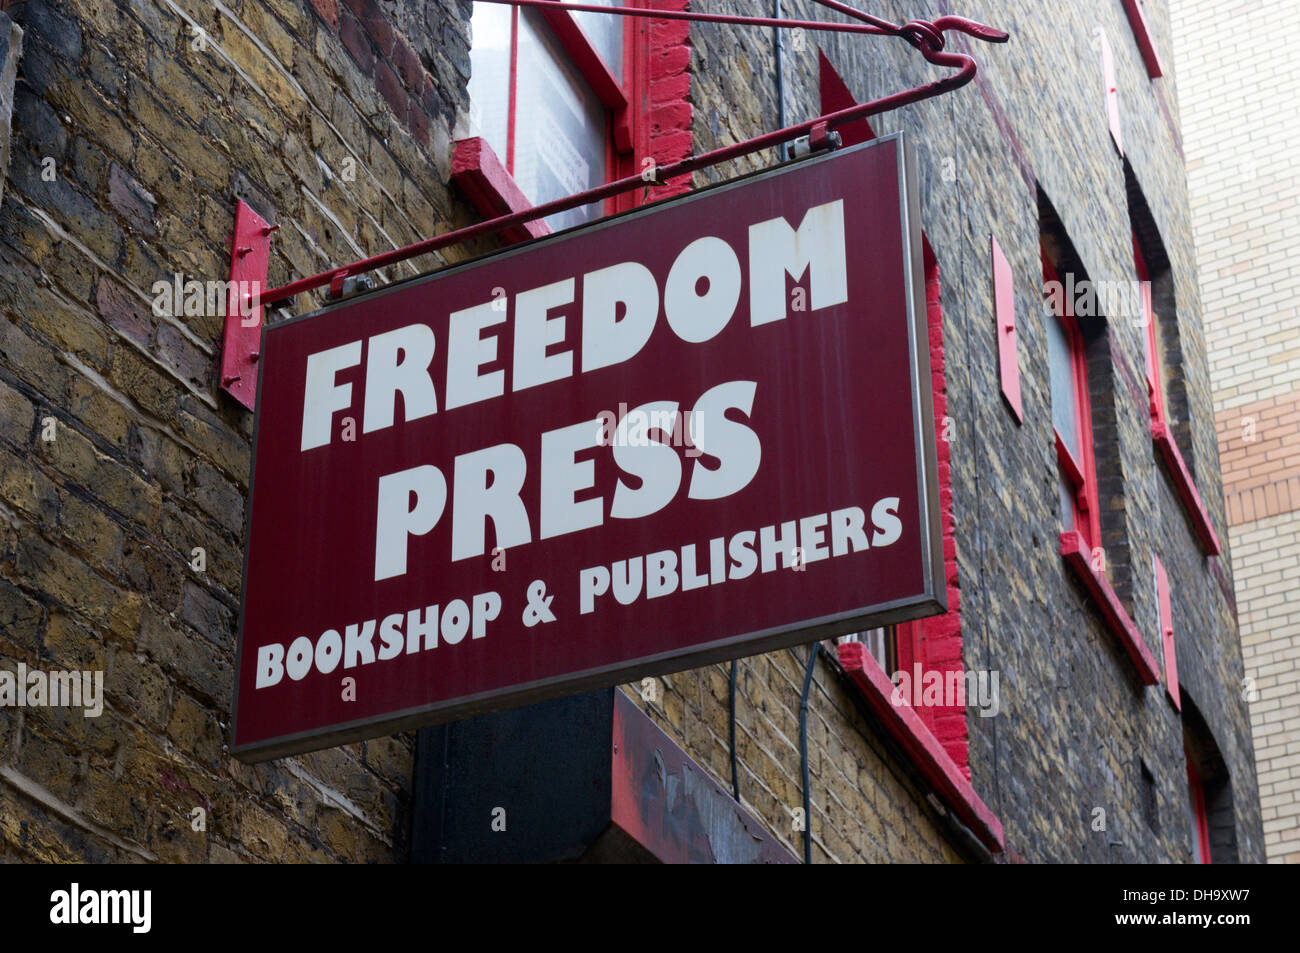 The Freedom Press anarchist publishers and bookshop in Whitechapel, East London. - Stock Image